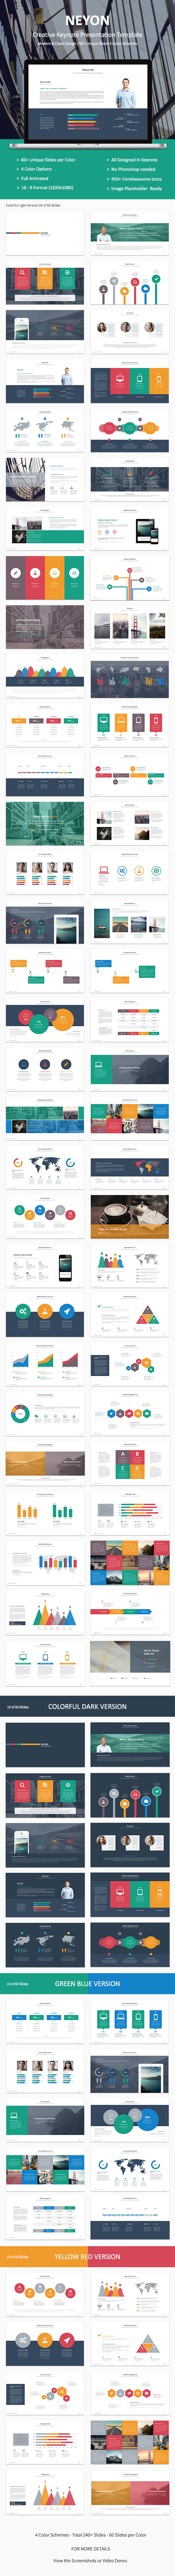 GraphicRiver Neyon Keynote Presentation 8923184